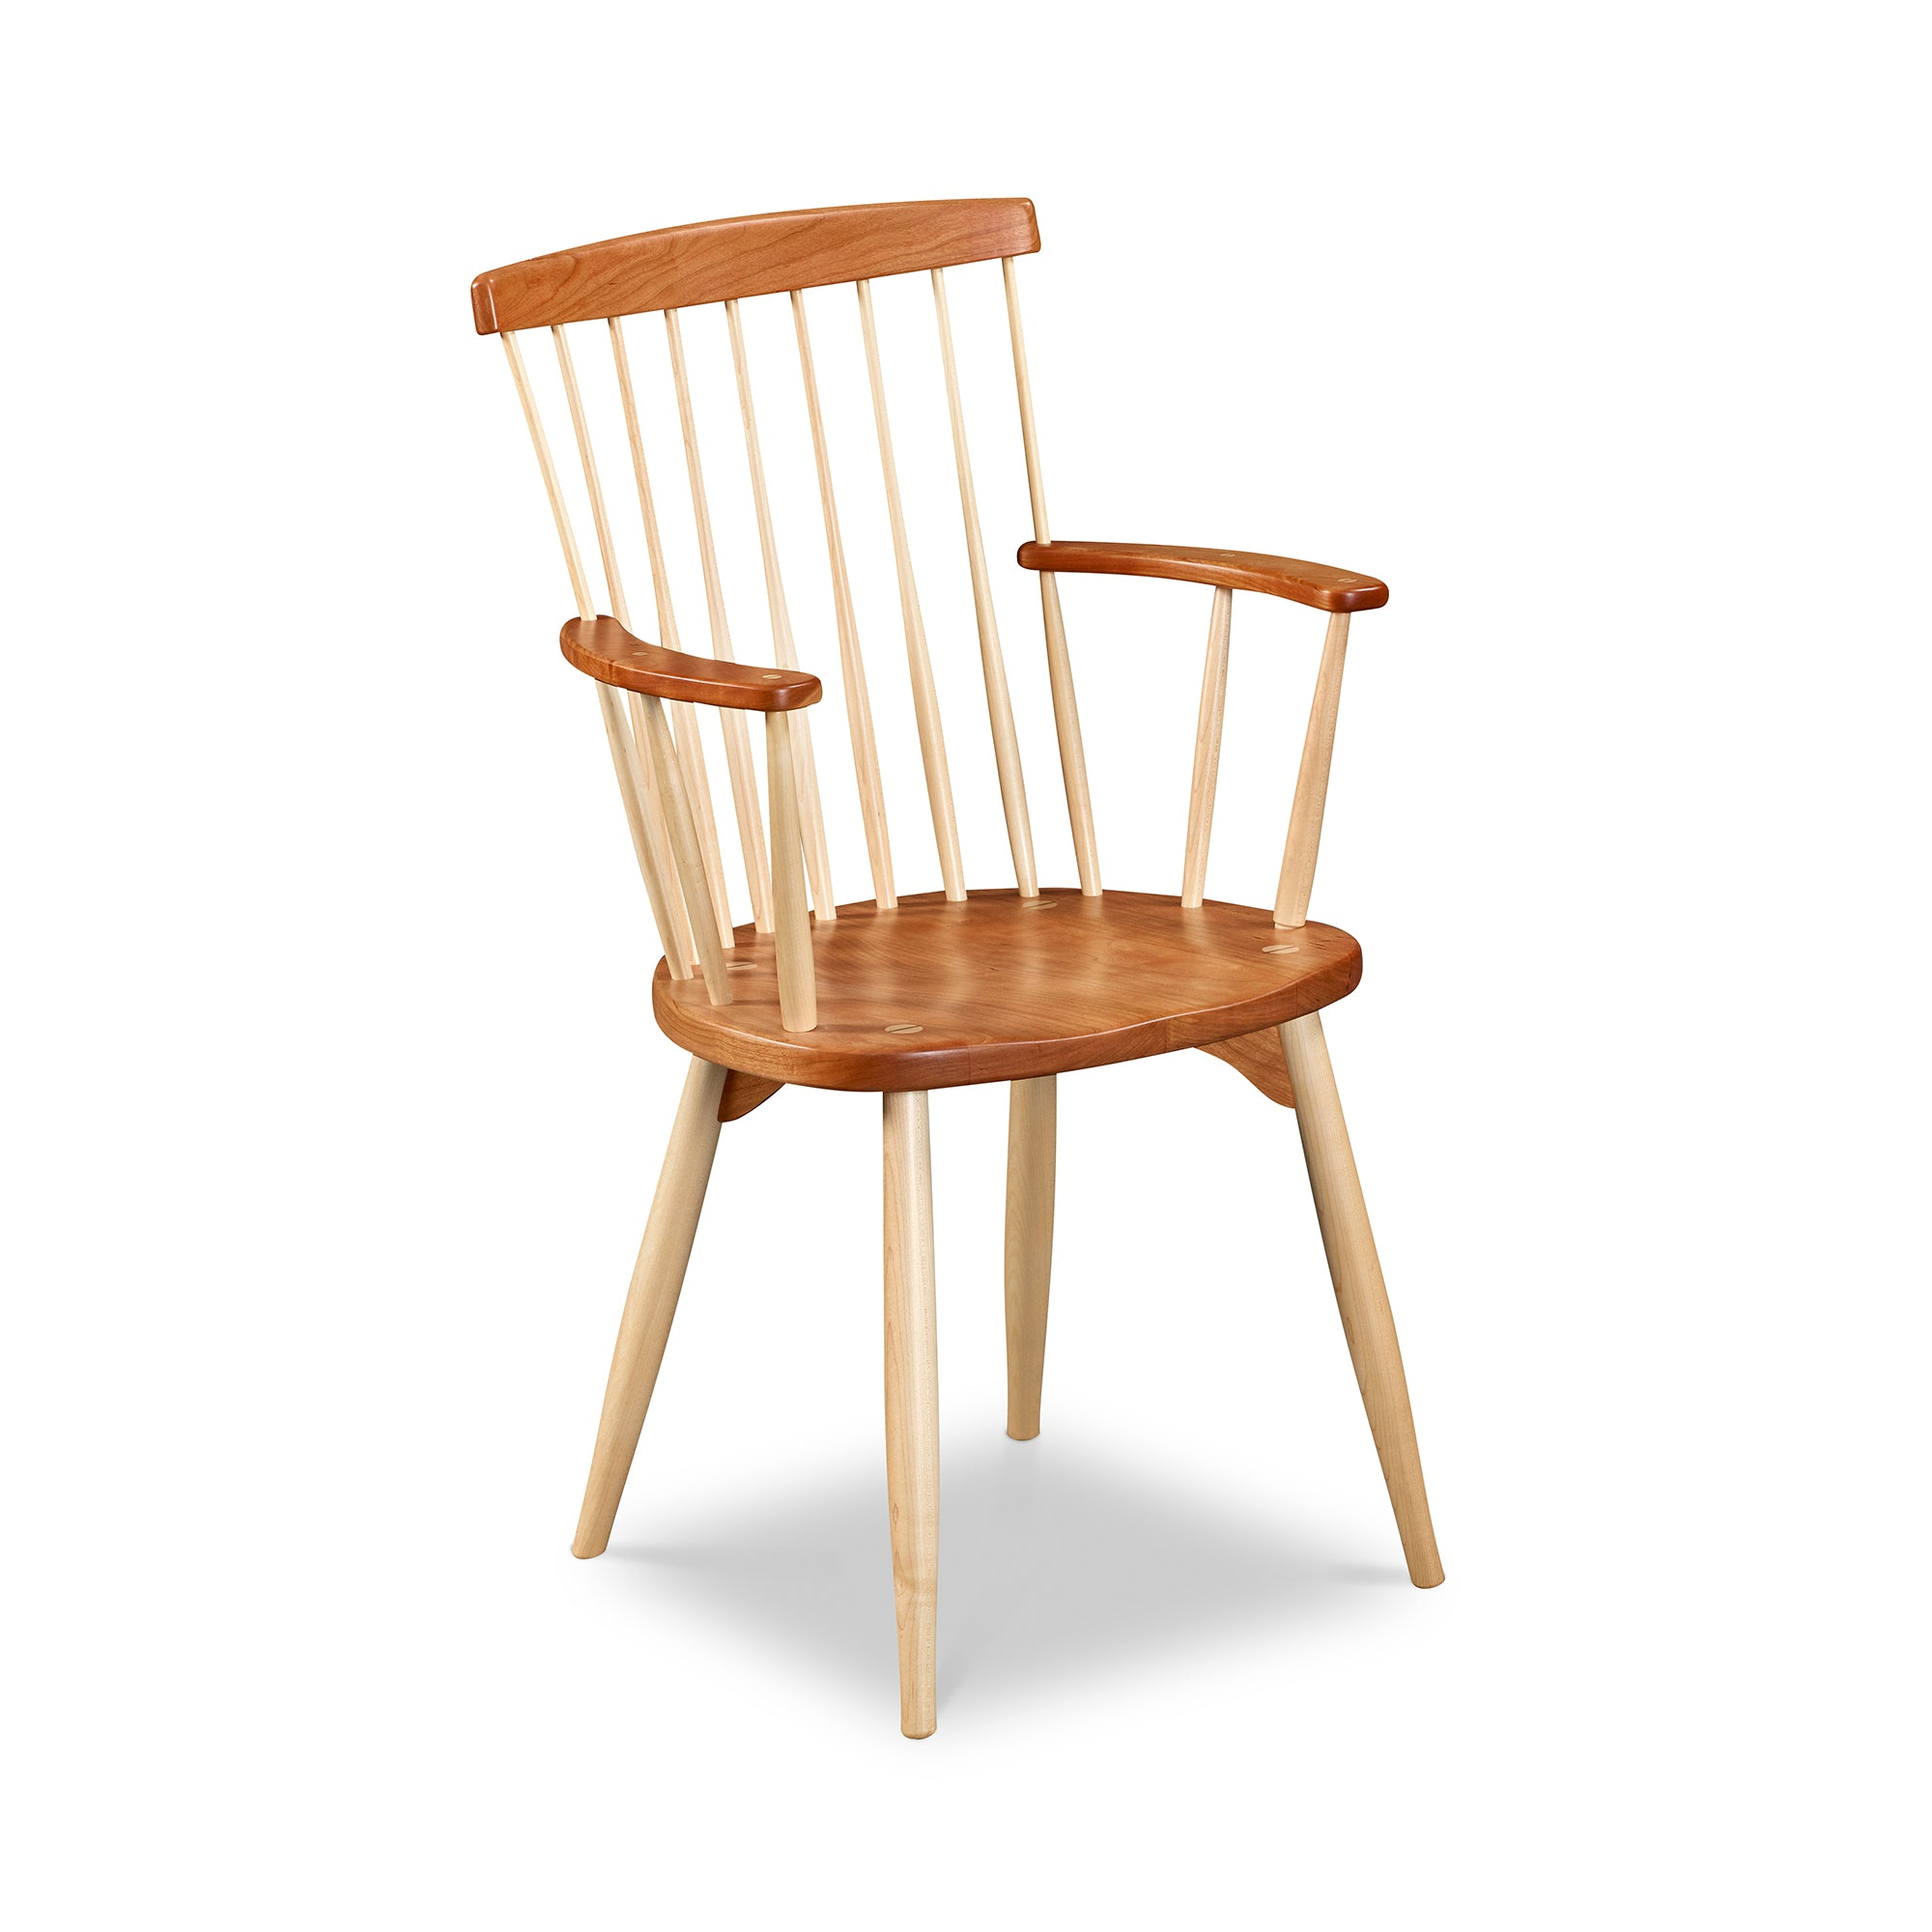 Classic spindle back chair arm chair with round tapered legs in cherry and maple